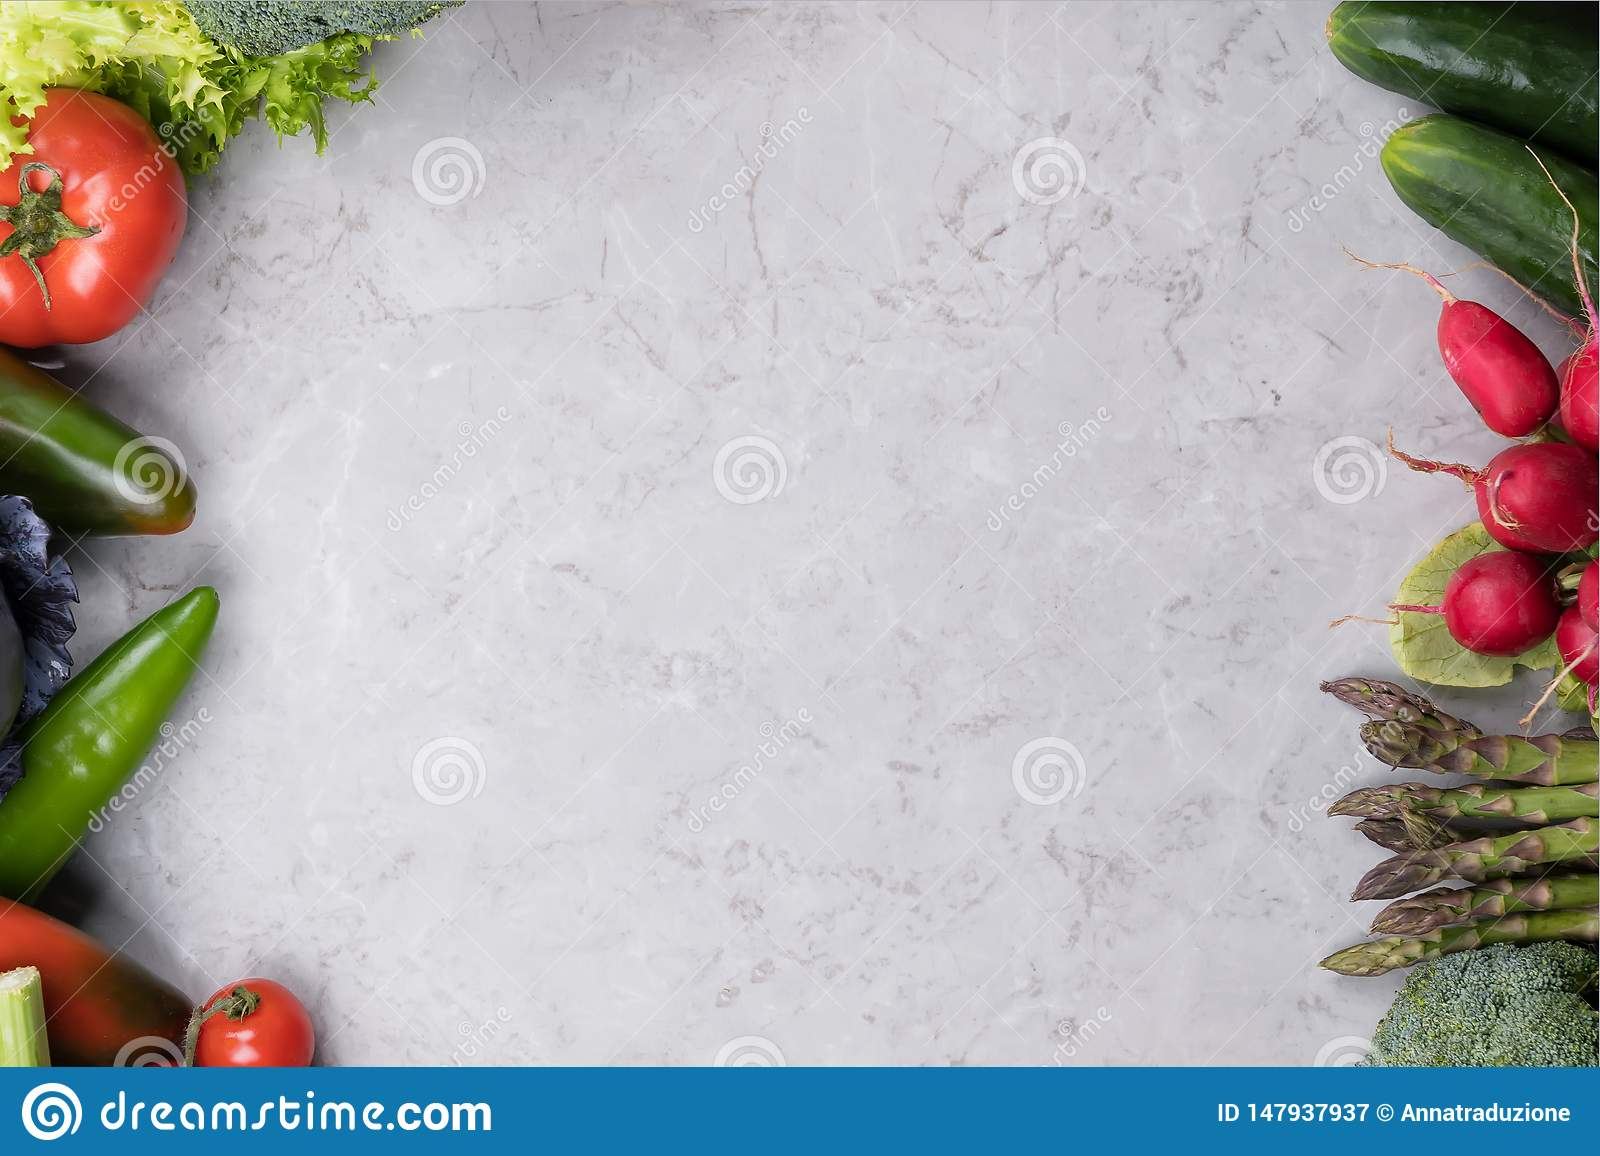 Organic Food Background Food Photography Different Vegetable On Gray Marble Background Copy Space High Resolution Product Stock Image Image Of Detox Health 147937937